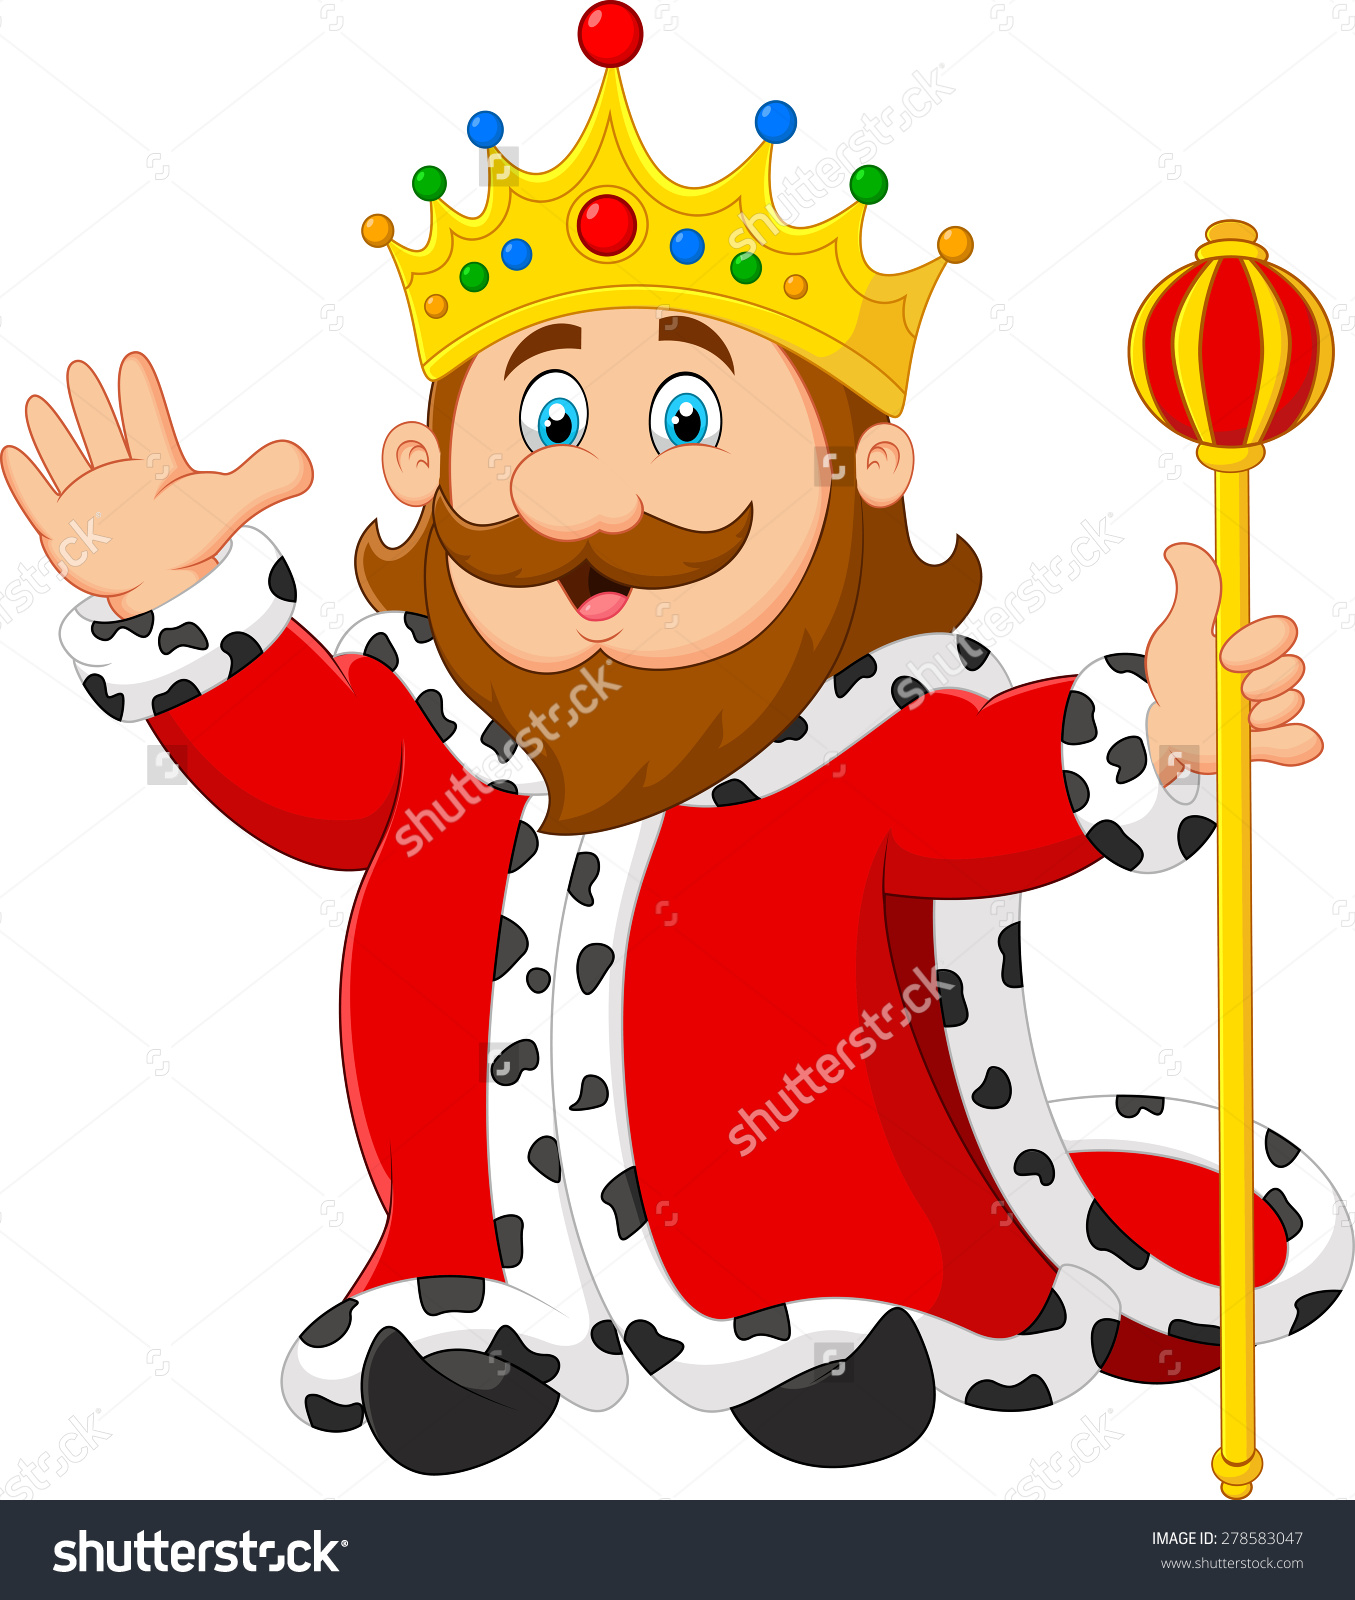 King clipart 4 » Clipart Station.